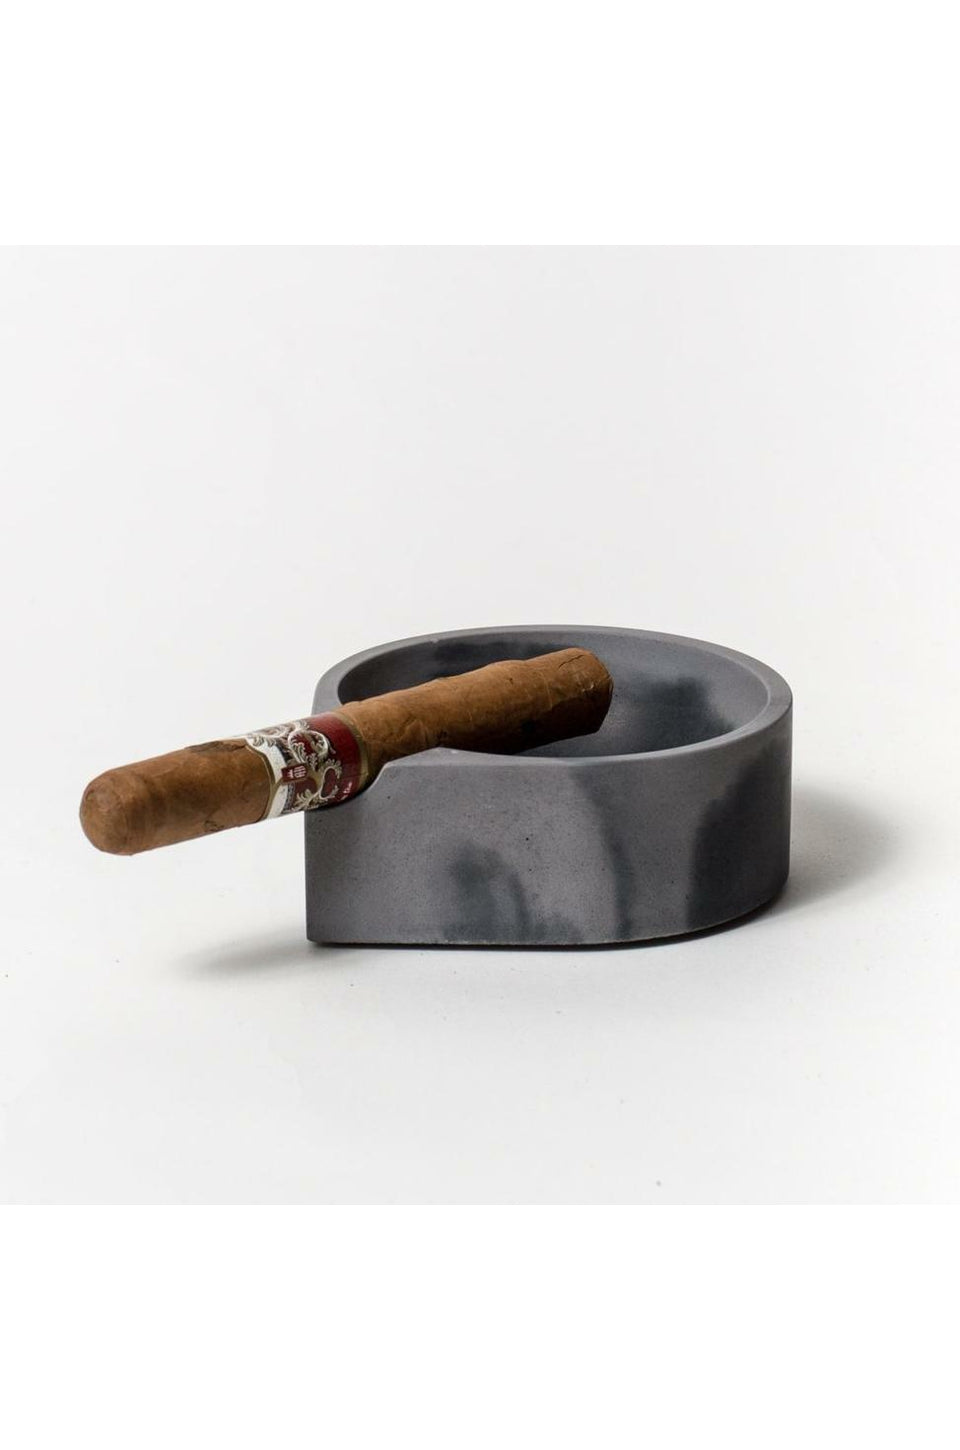 Pretti Cool Cigar Ashtray In Black & Grey